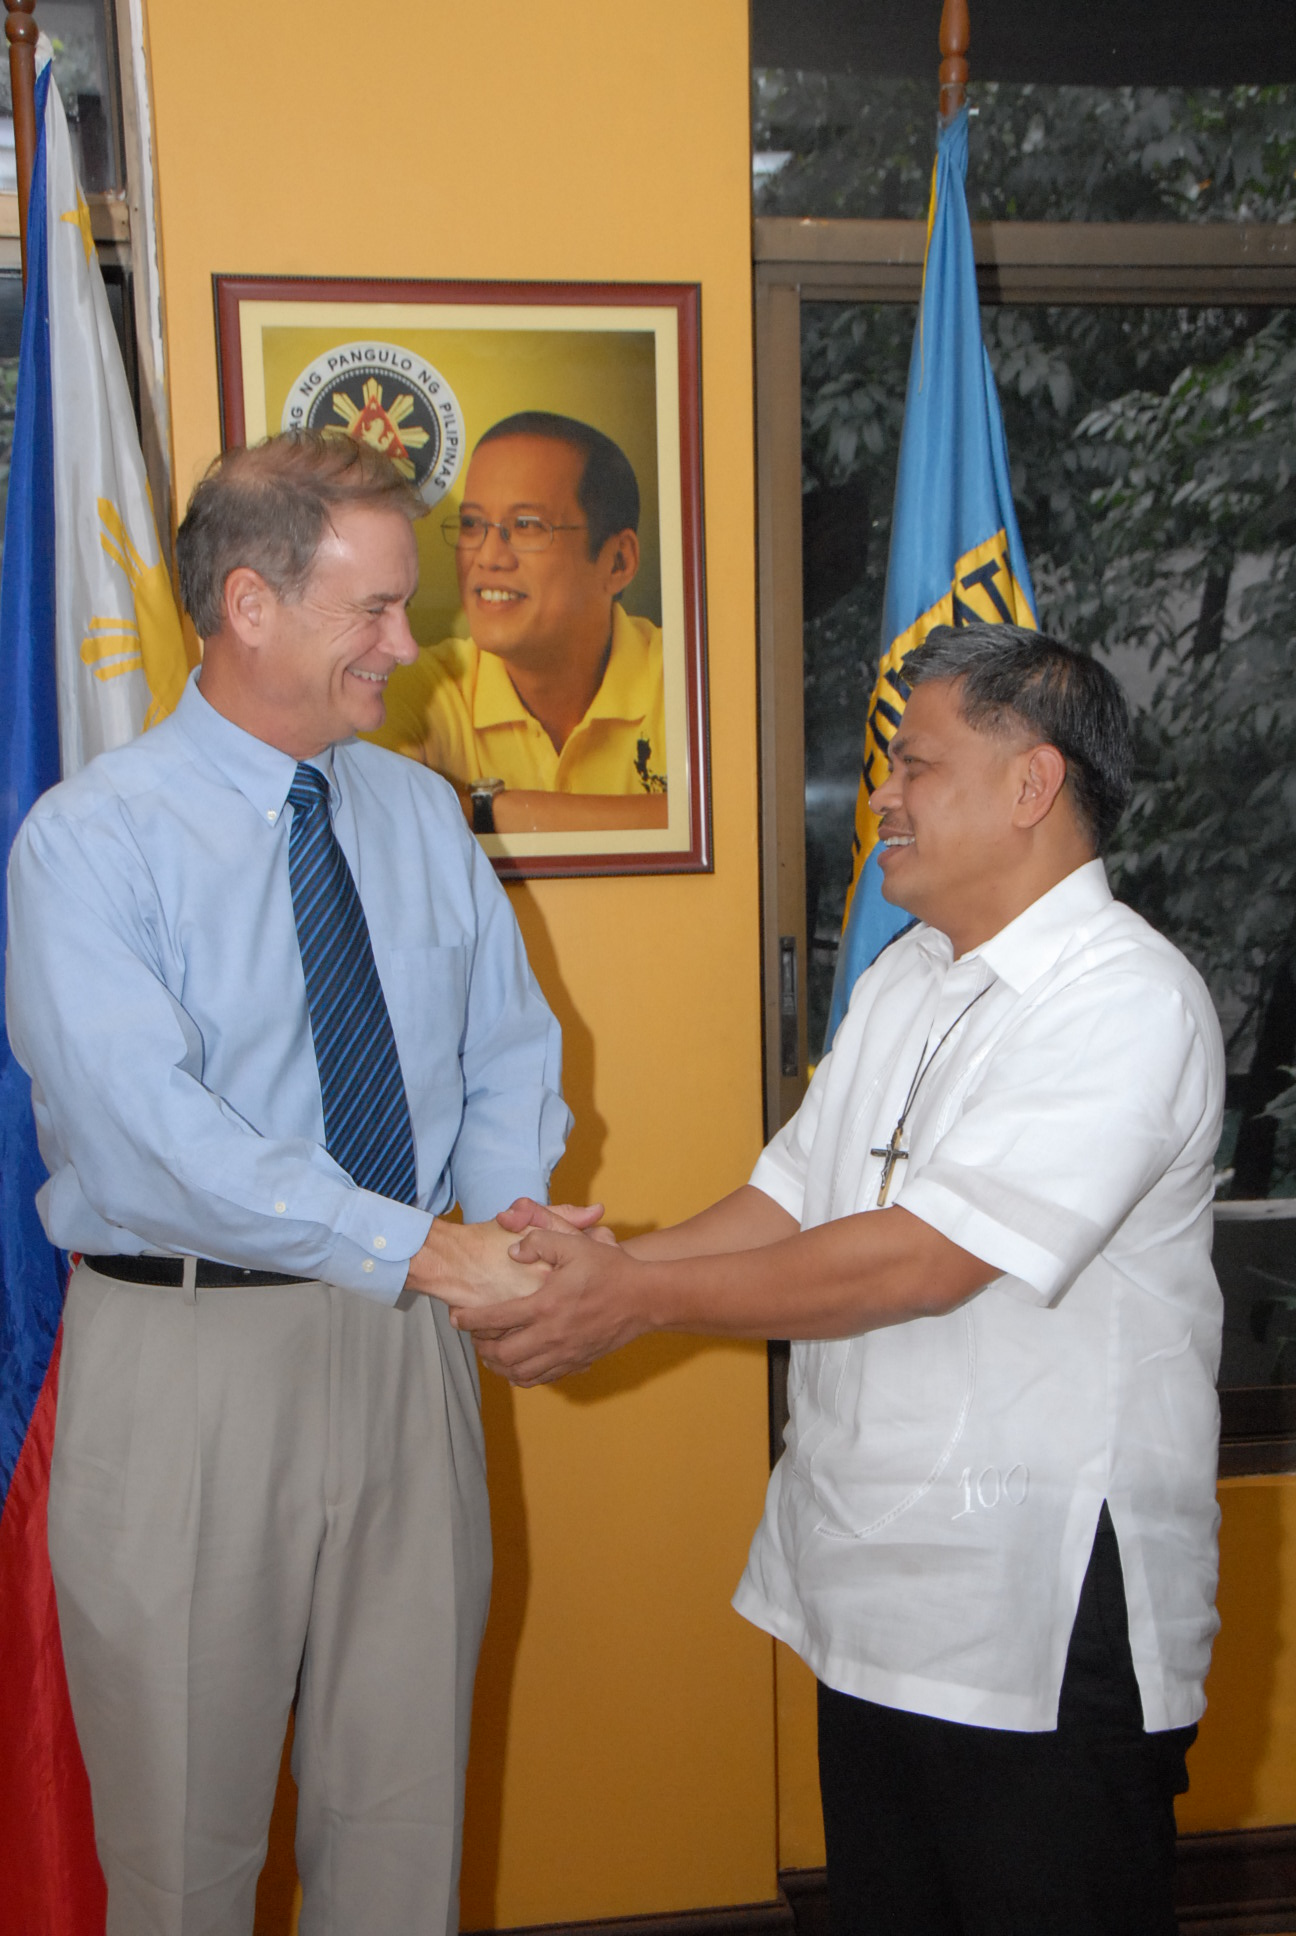 SIL International Director Freddy Boswell, Education Secretary Armin Luistro